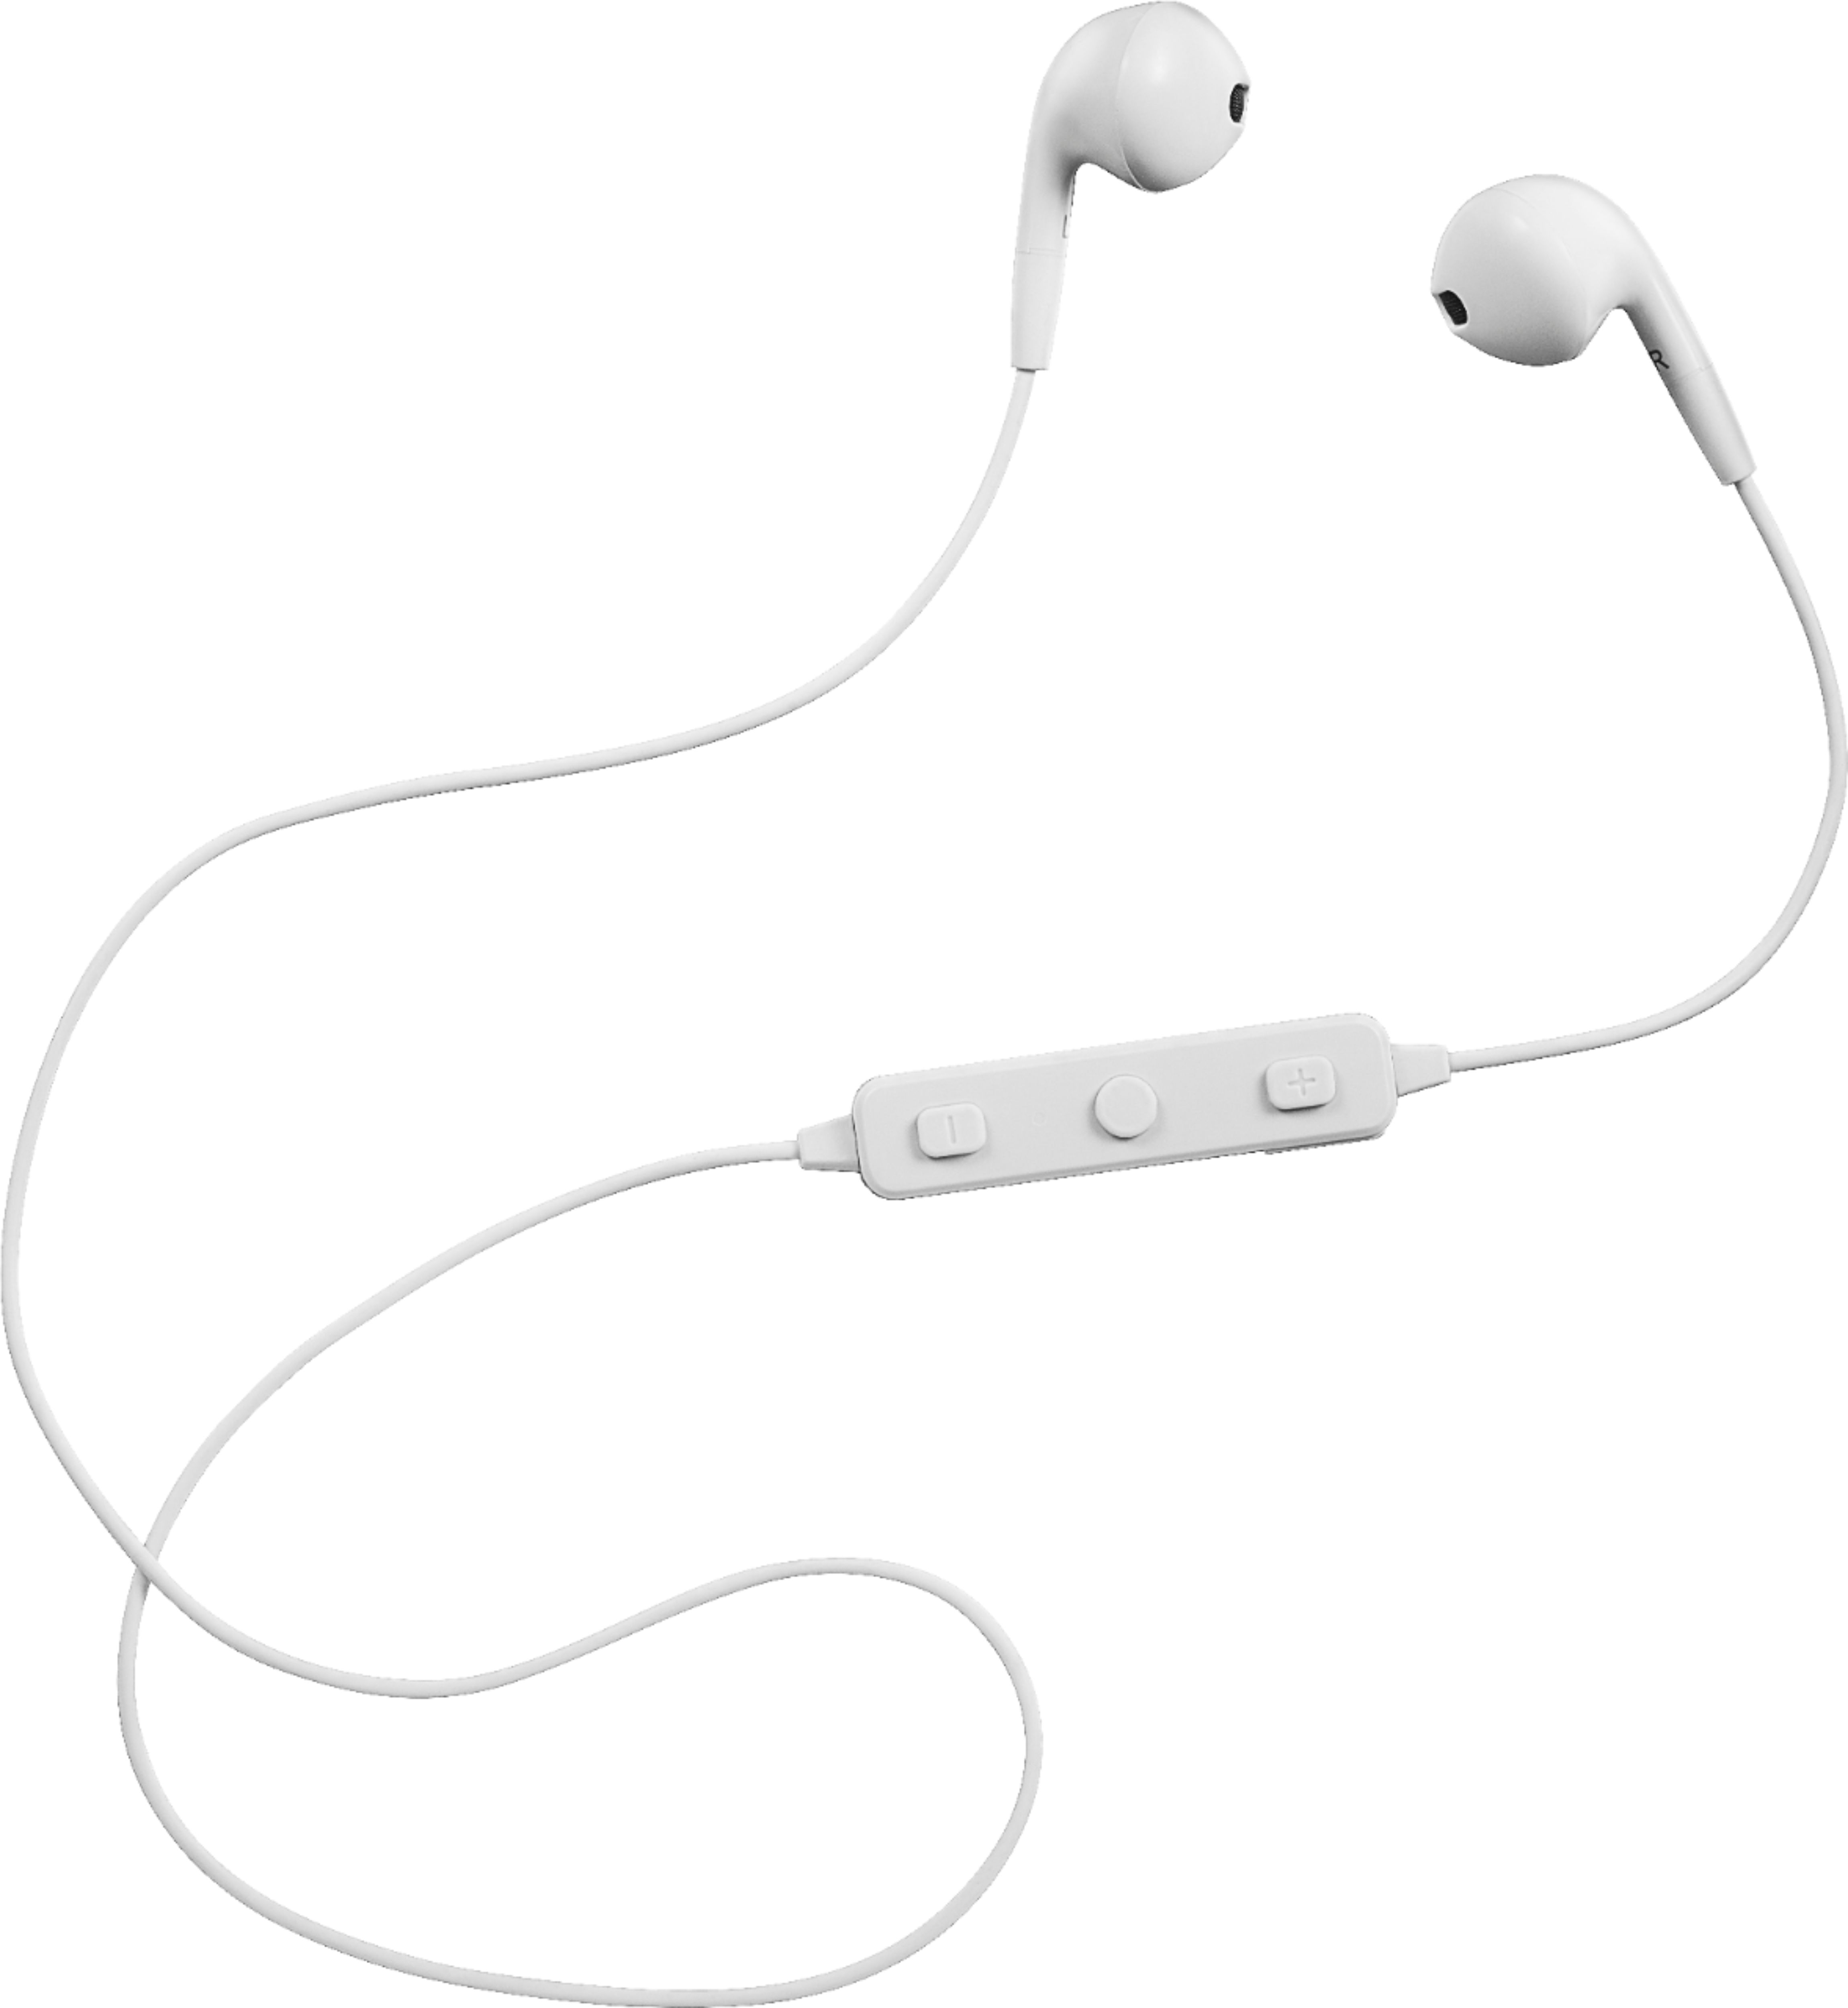 Insignia™ Wireless Earbud Headphones Off-white NS